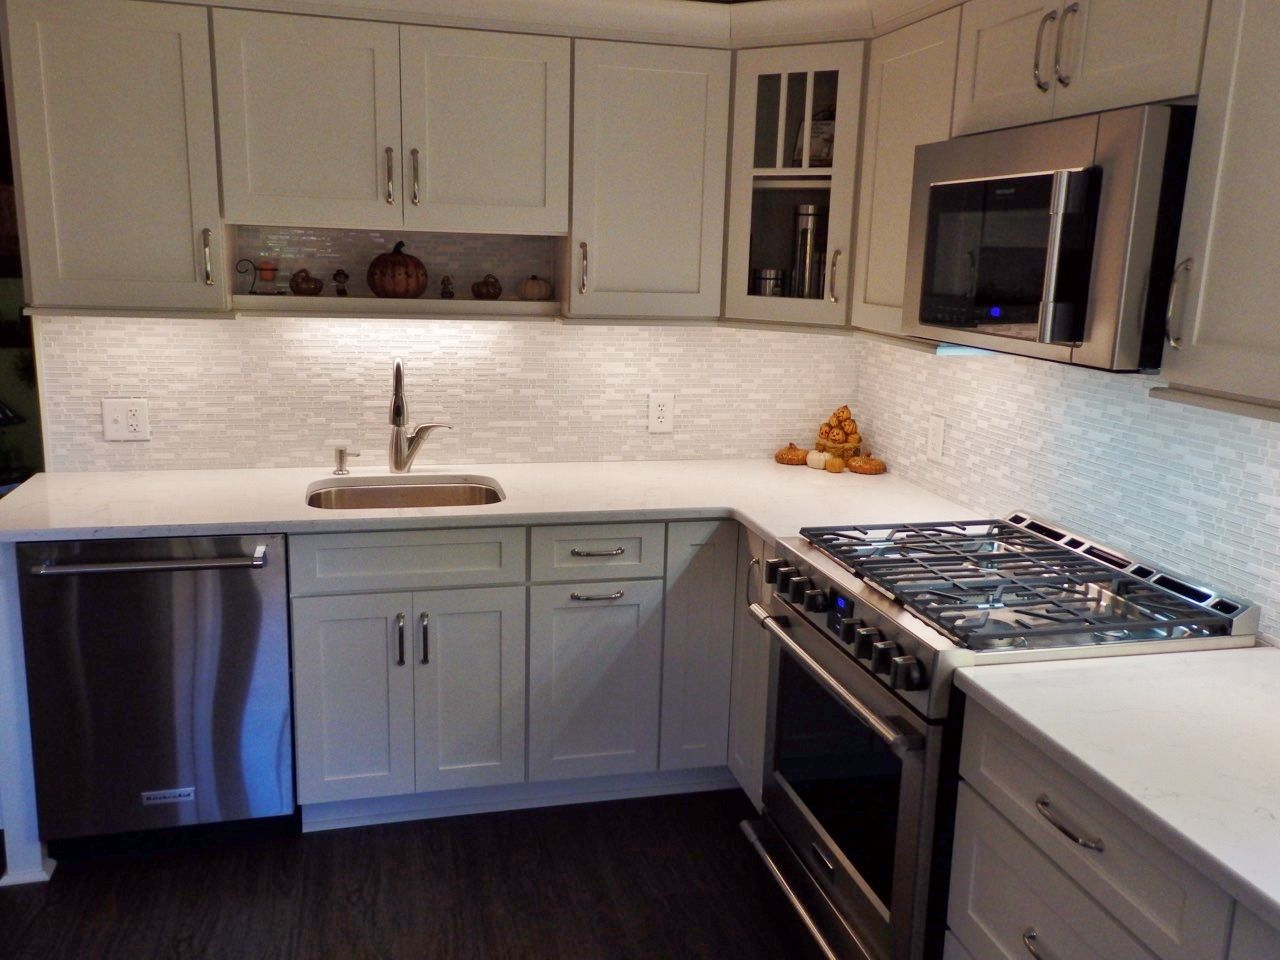 Pental quartz misterio engineered quartz countertops with a white glass and stone mosaic tile - Pictures of kitchens with quartz countertops ...